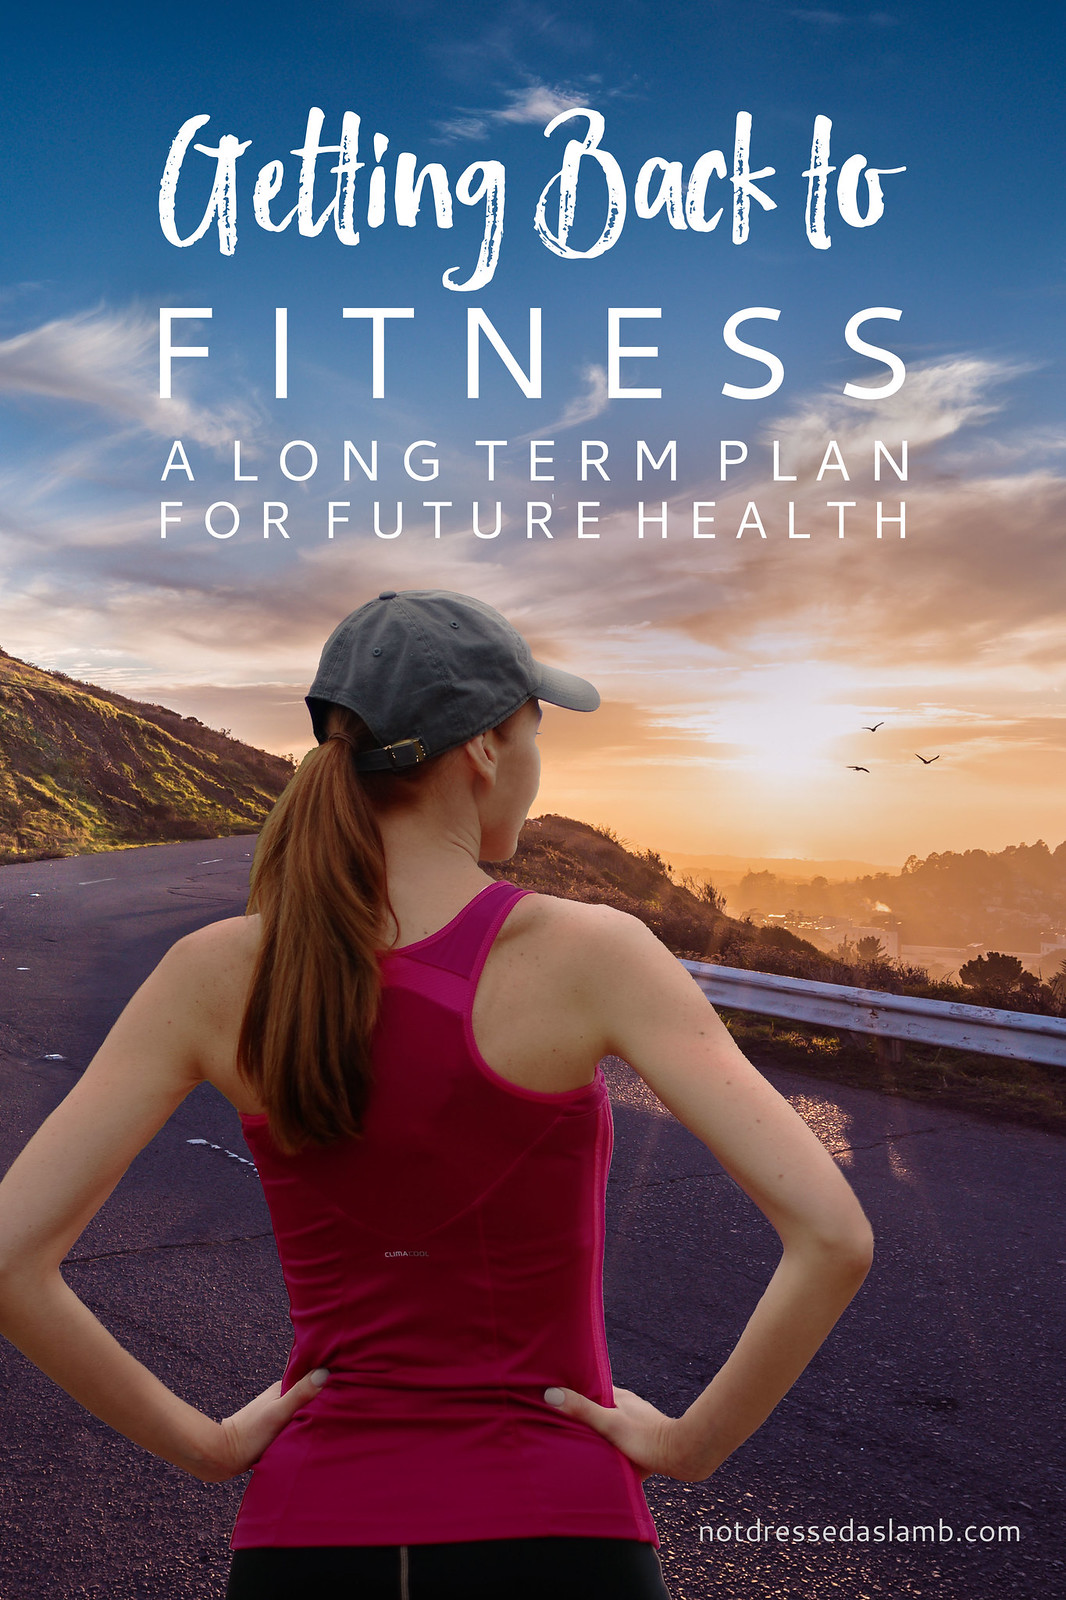 Getting Back to Fitness | A Long-Term Plan For Future Health (a Series)